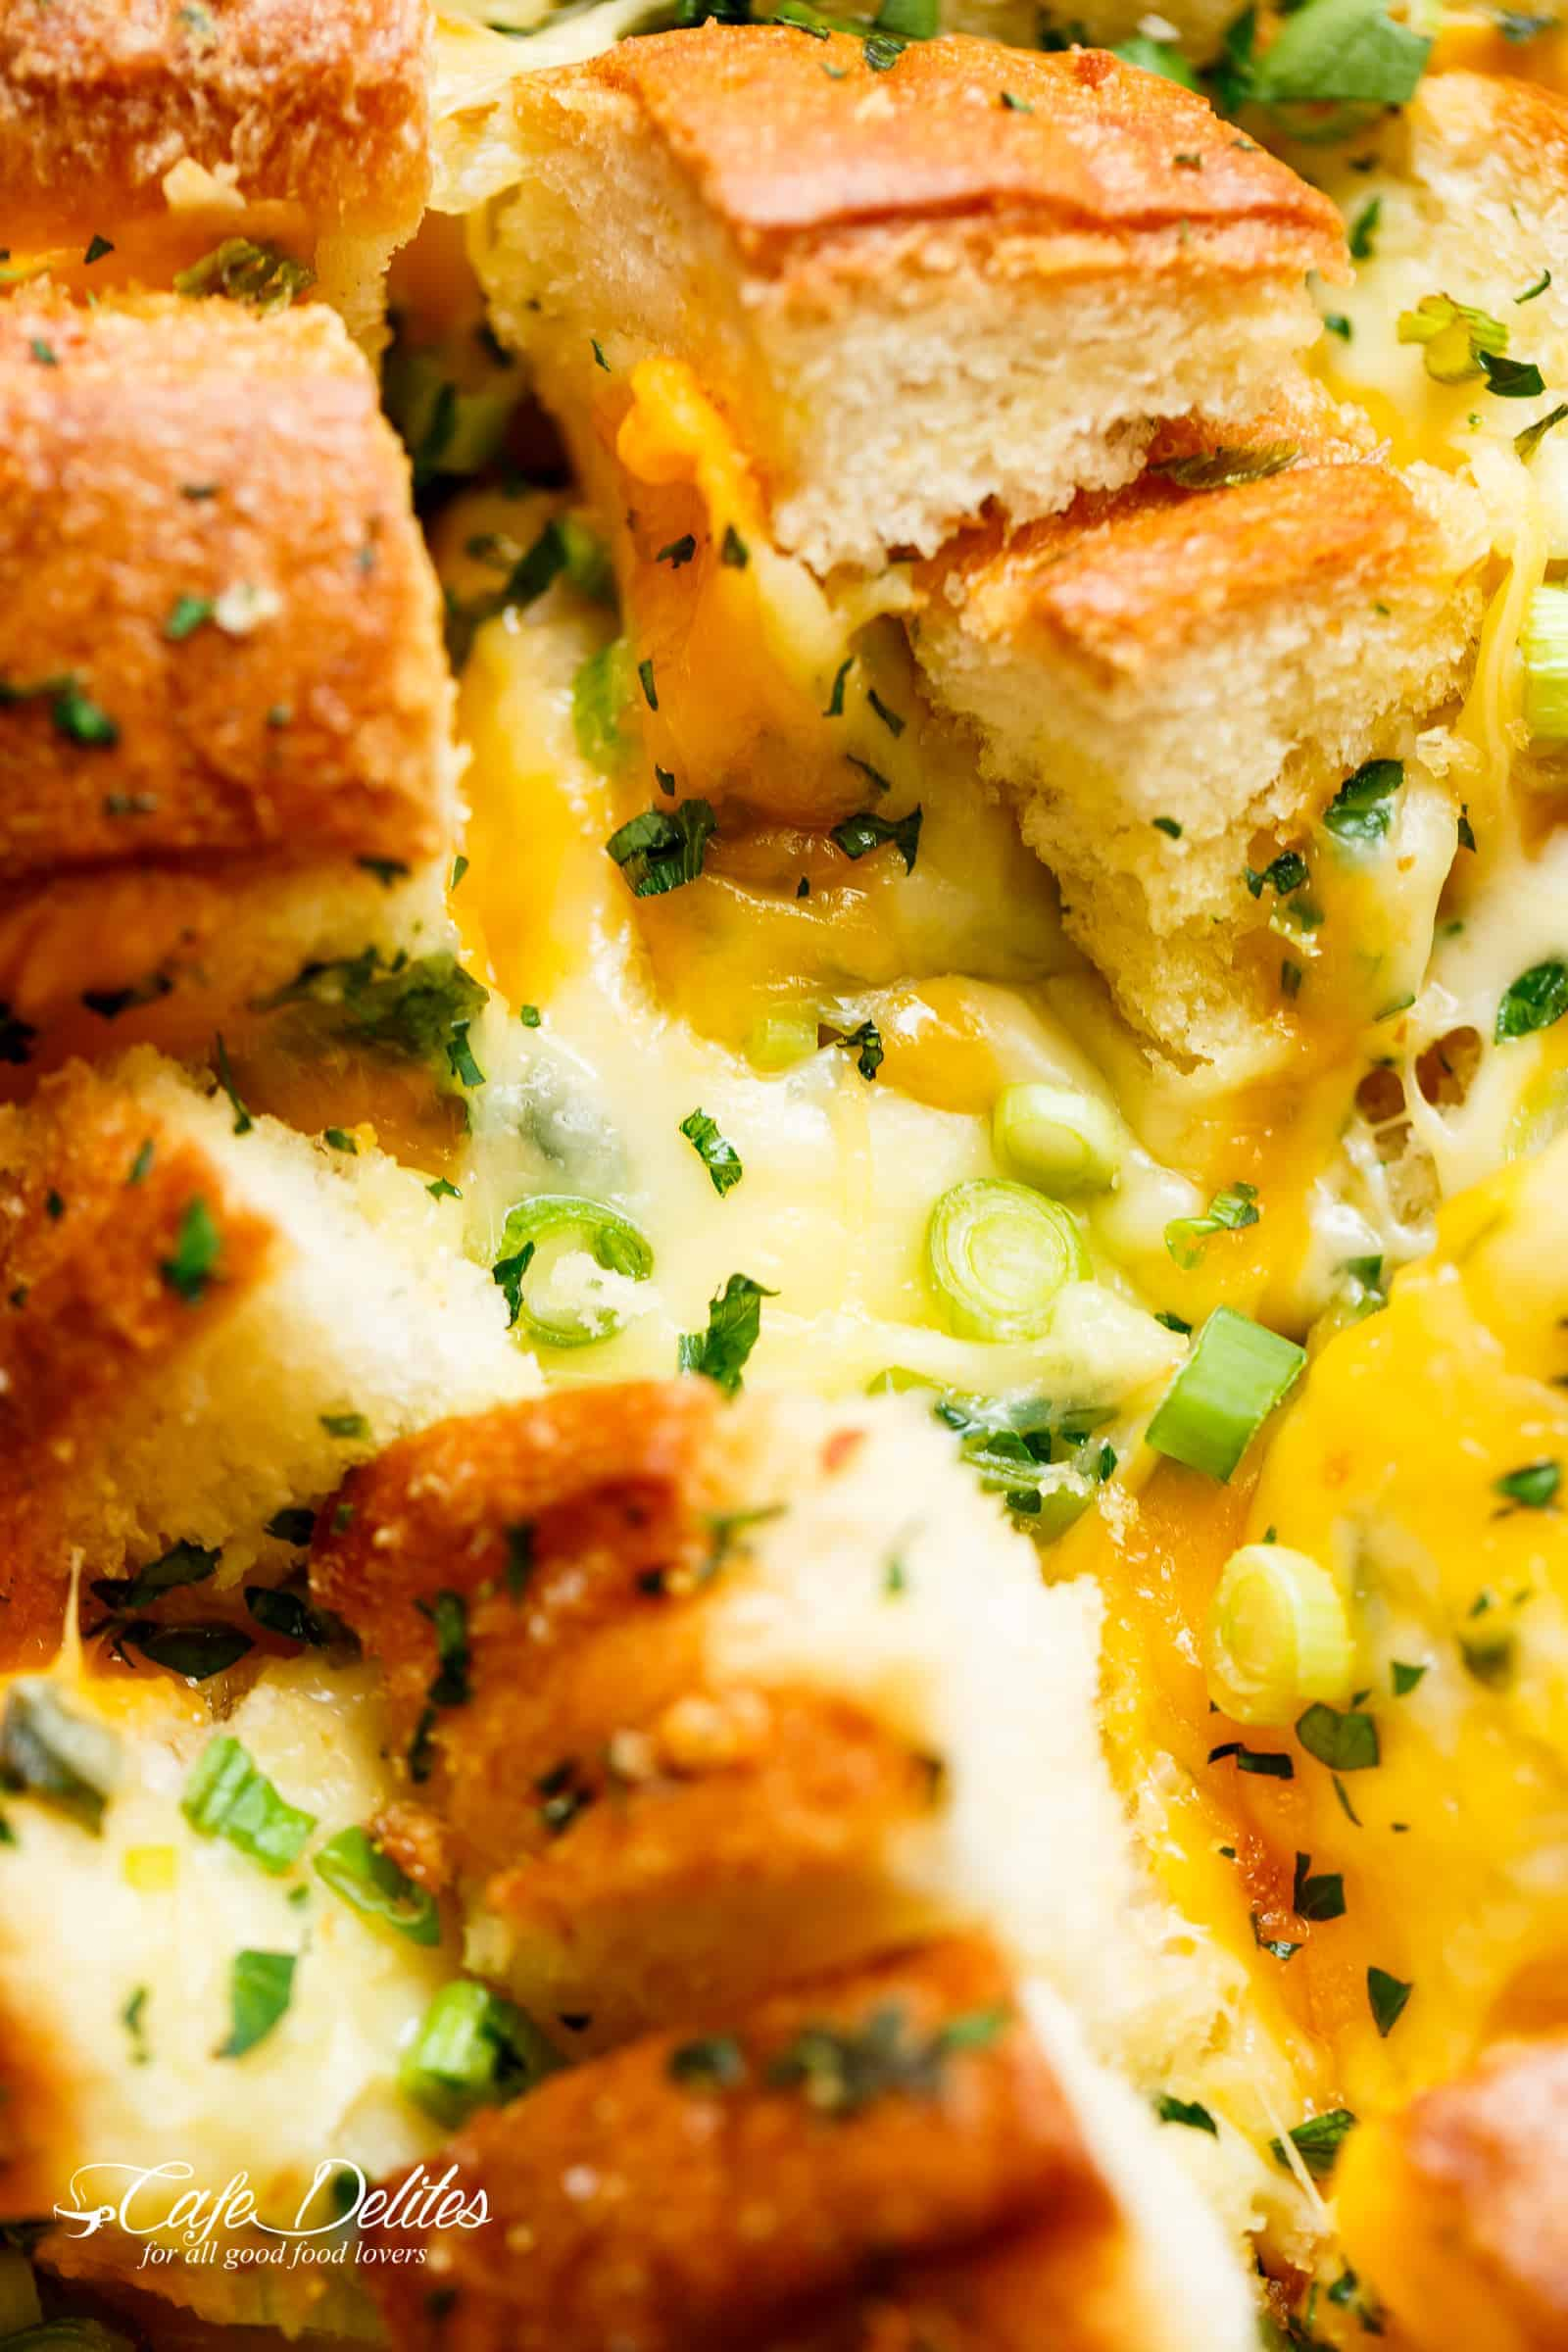 So MUCH CHEESE Bloomin' Onion Garlic Pull Apart Bread | cafedelites.com